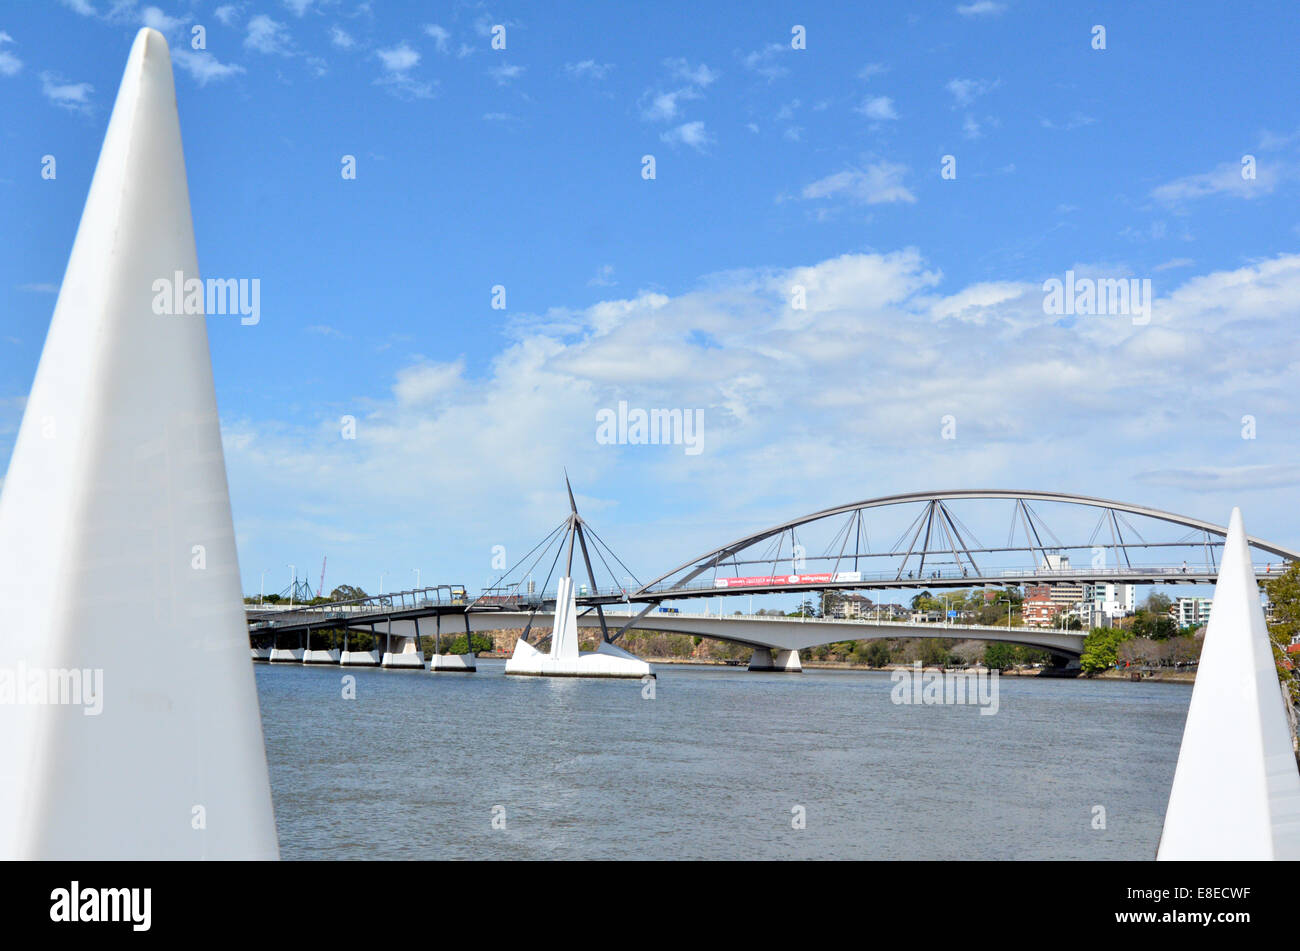 Goodwill Bridge in Brisbane Australia - Stock Image